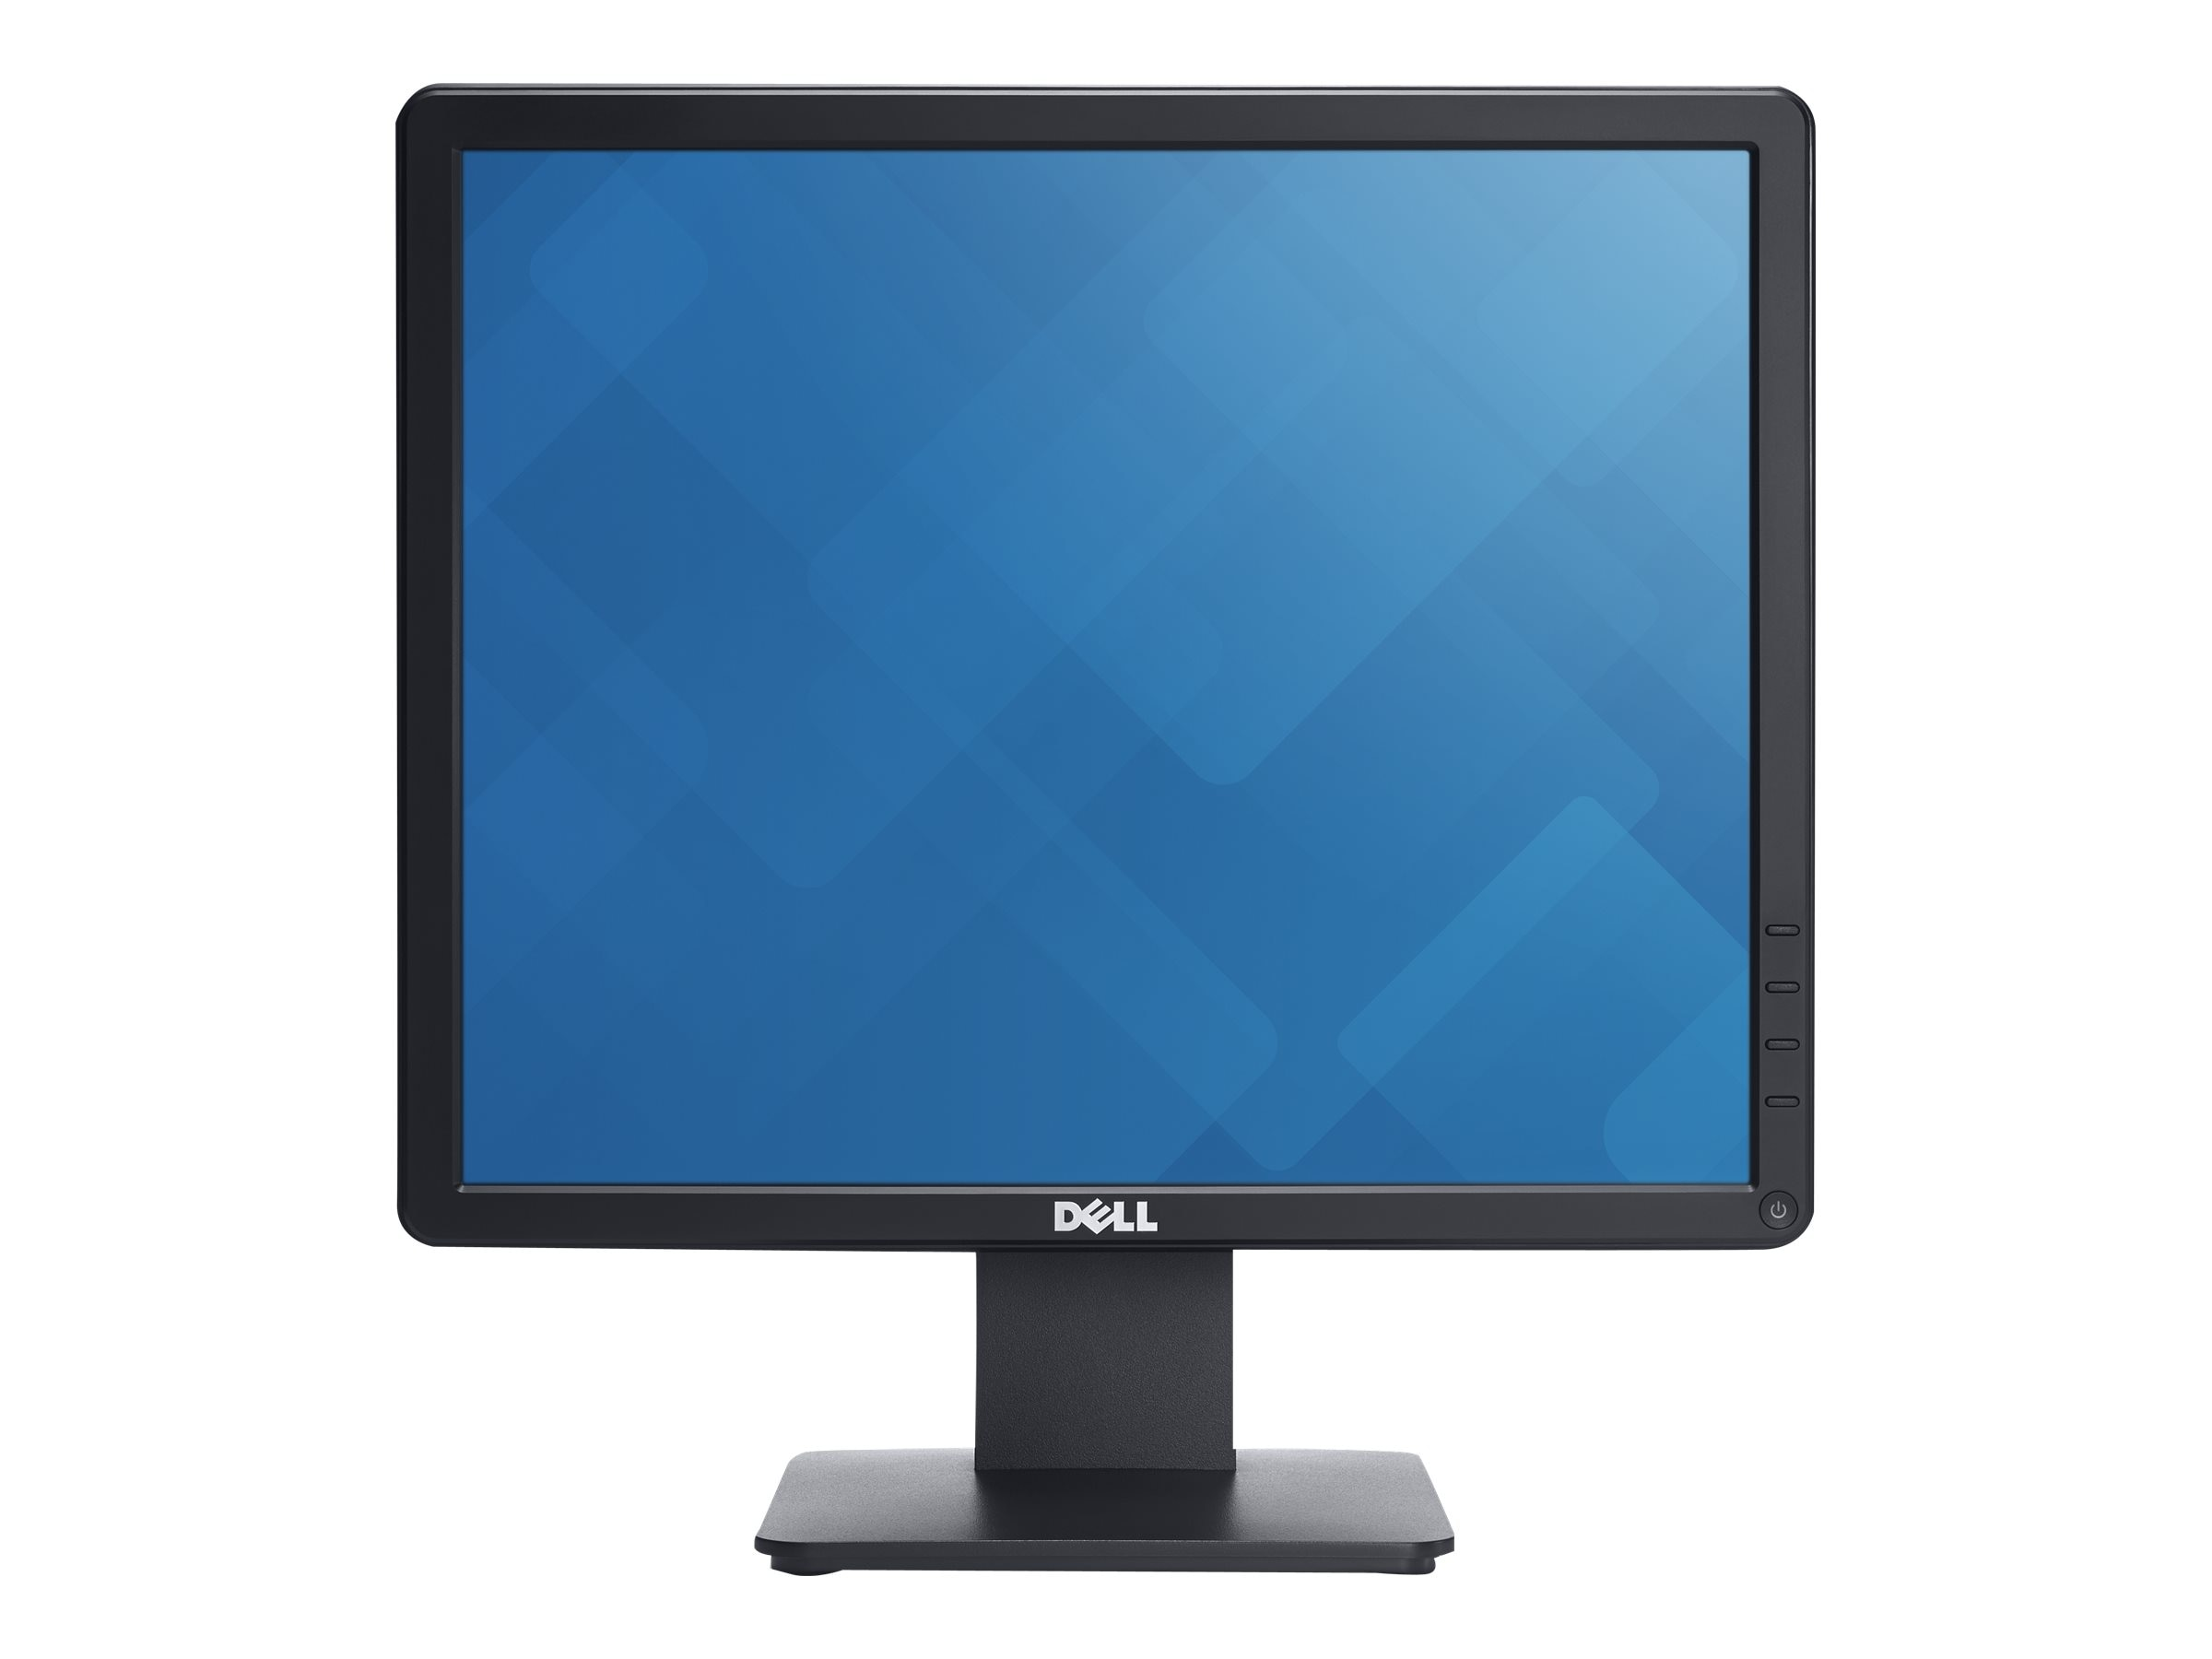 Dell 17 E1715S LED-LCD Monitor, Black